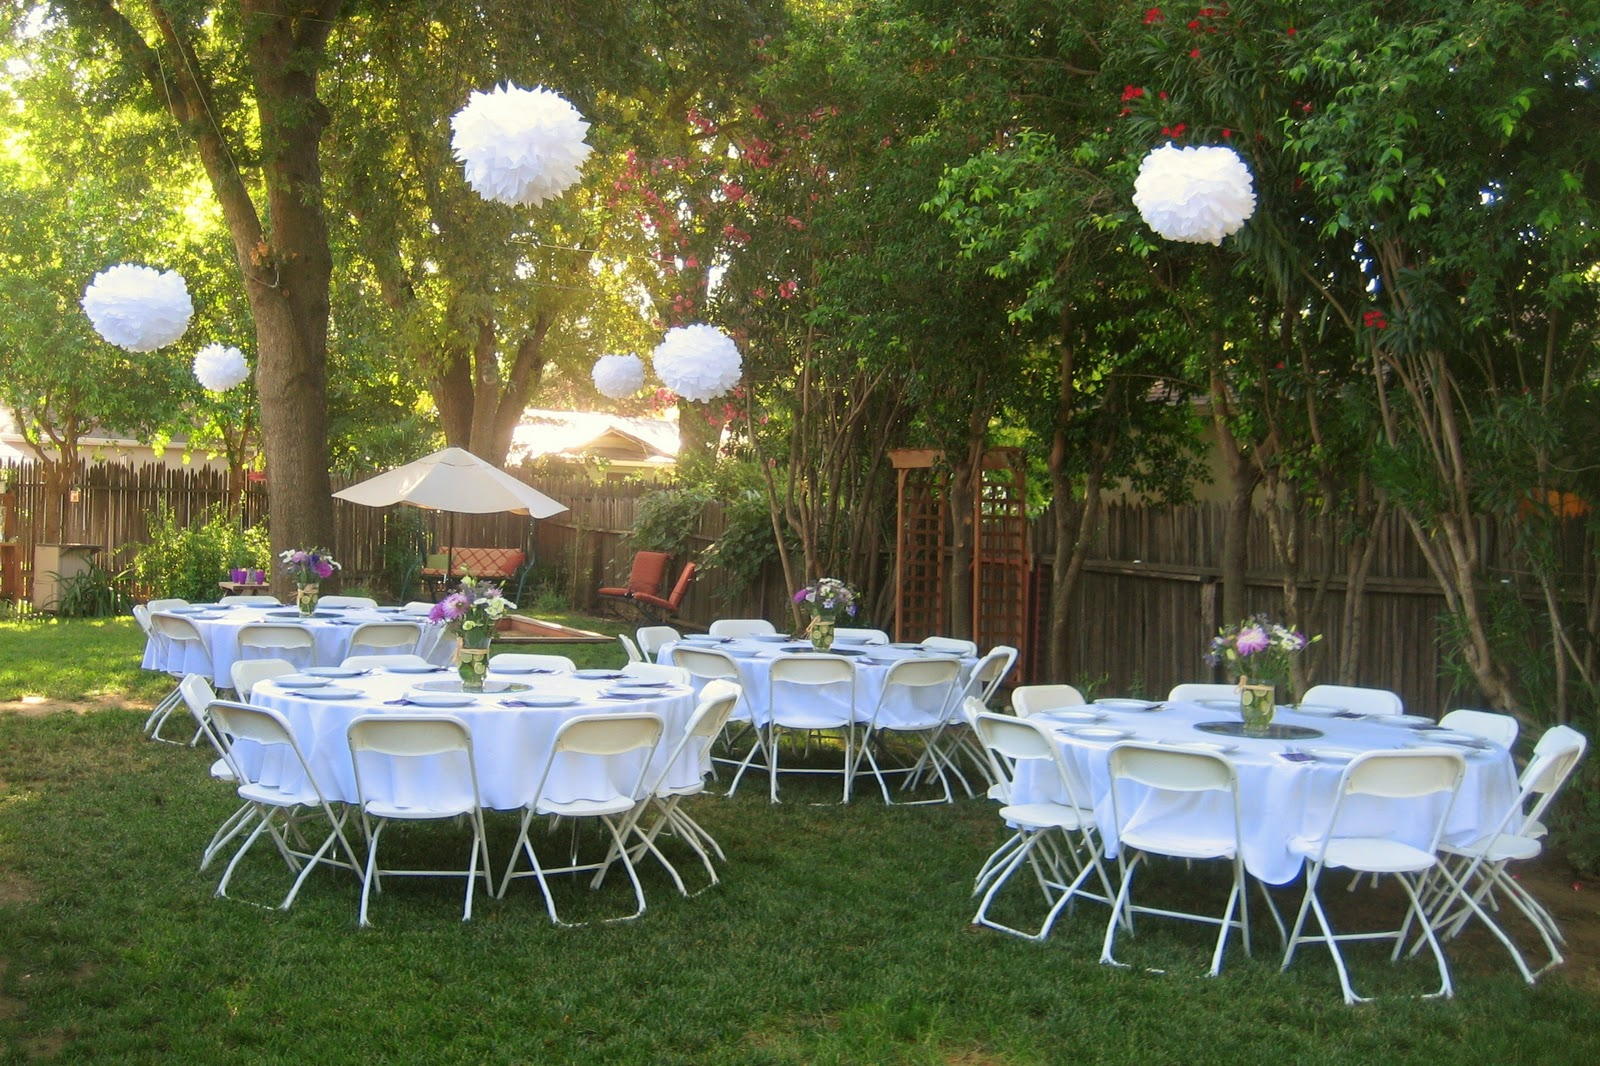 A resting place for completed projects backyard bridal for Wedding party ideas